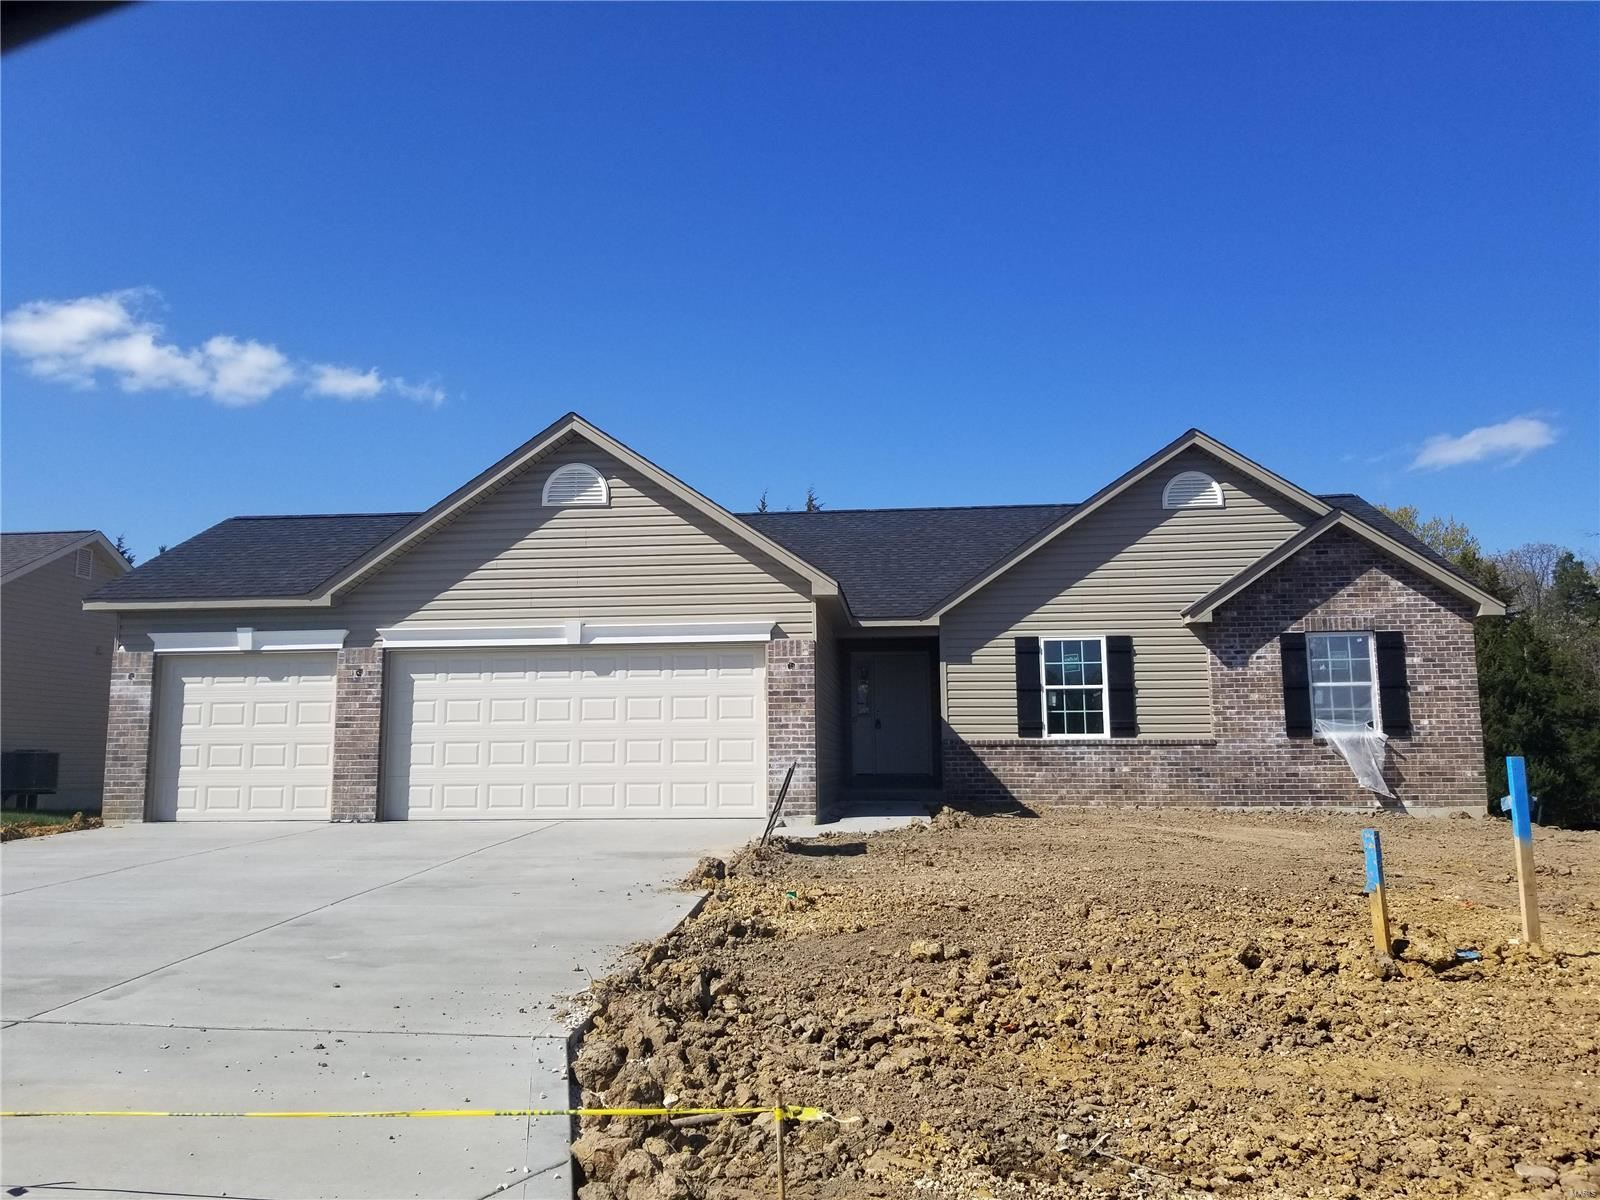 109 Bryan Ridge Drive, Wright City, MO 63390 - MLS#: 18053841